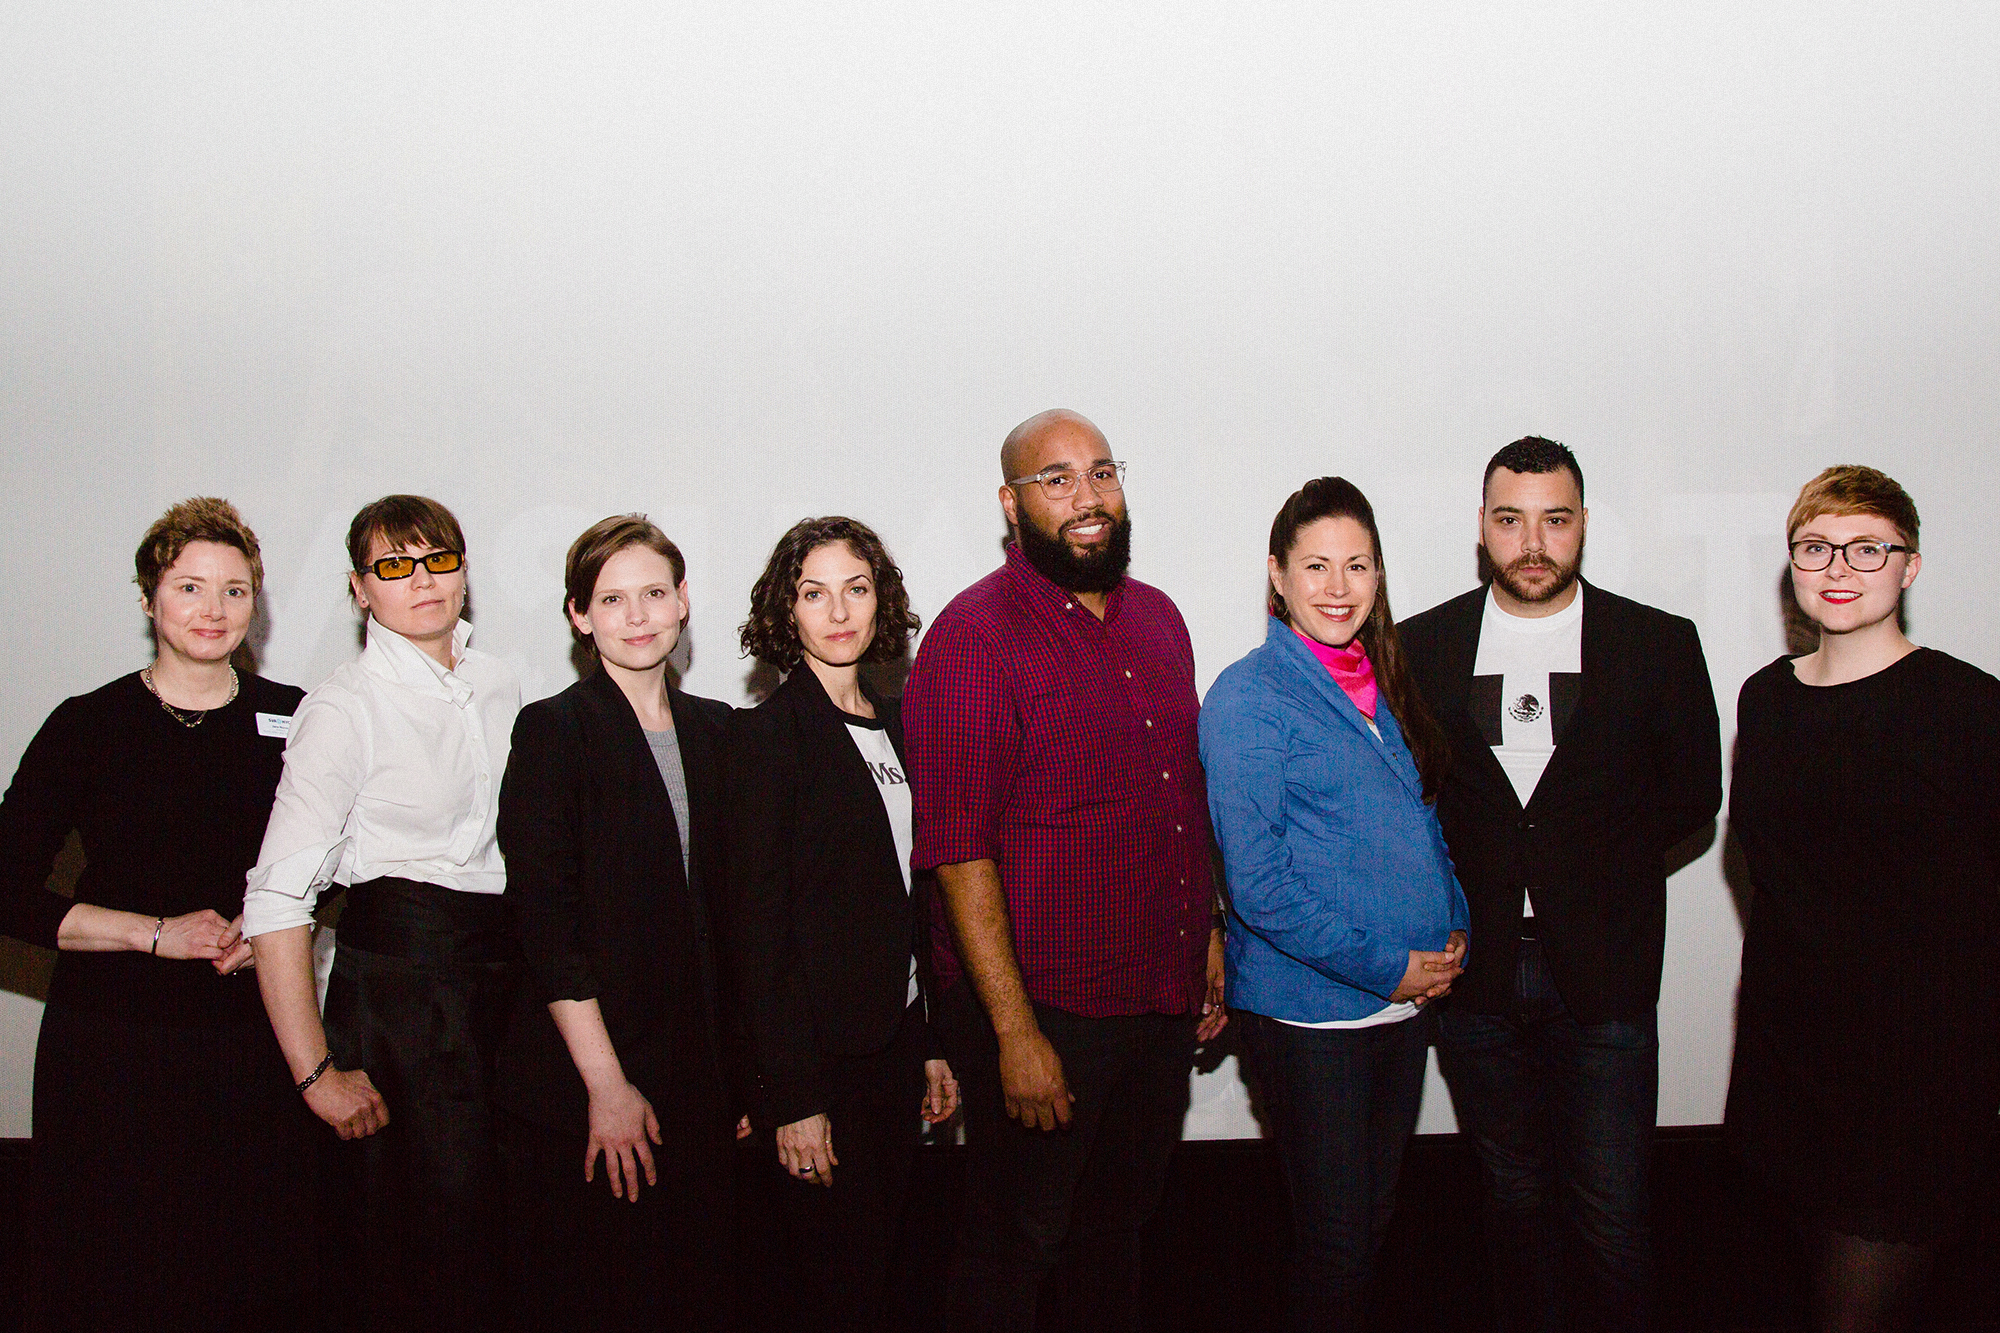 Jane Nuzzo, Marlena Buczek Smith, Kate Styer, Cat Del Buono, Delano Dunn, Katie Yamasaki, Bruno Silva, and Jamie Keesling